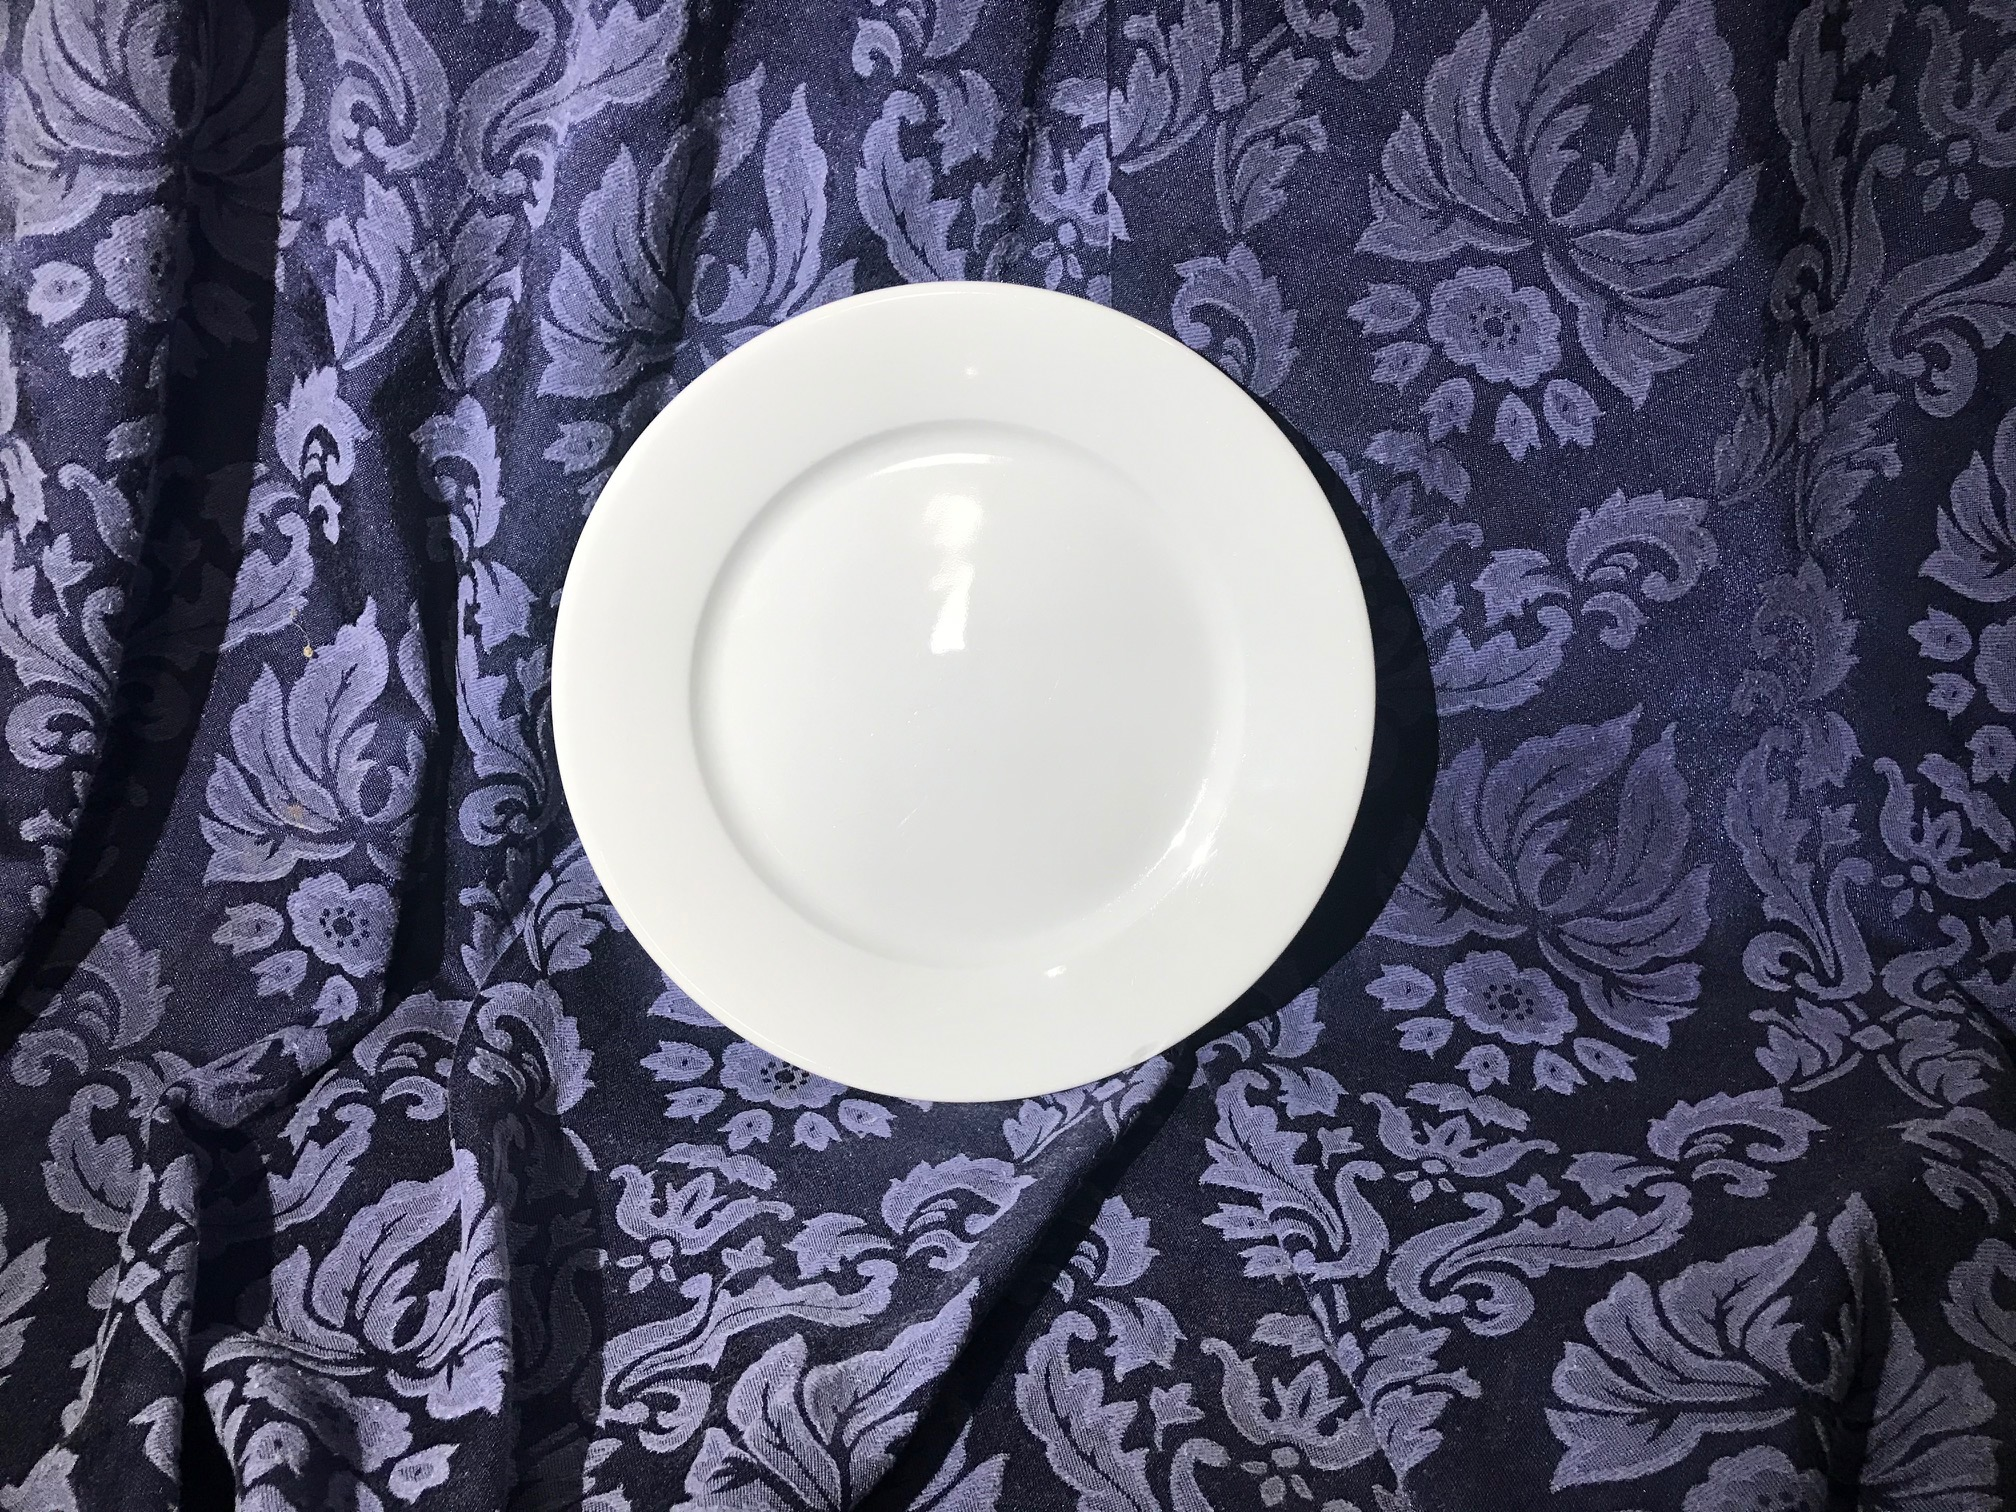 Apilco white porcelain plate, made in France: 90 ppm Lead - safe by all standards. Please click